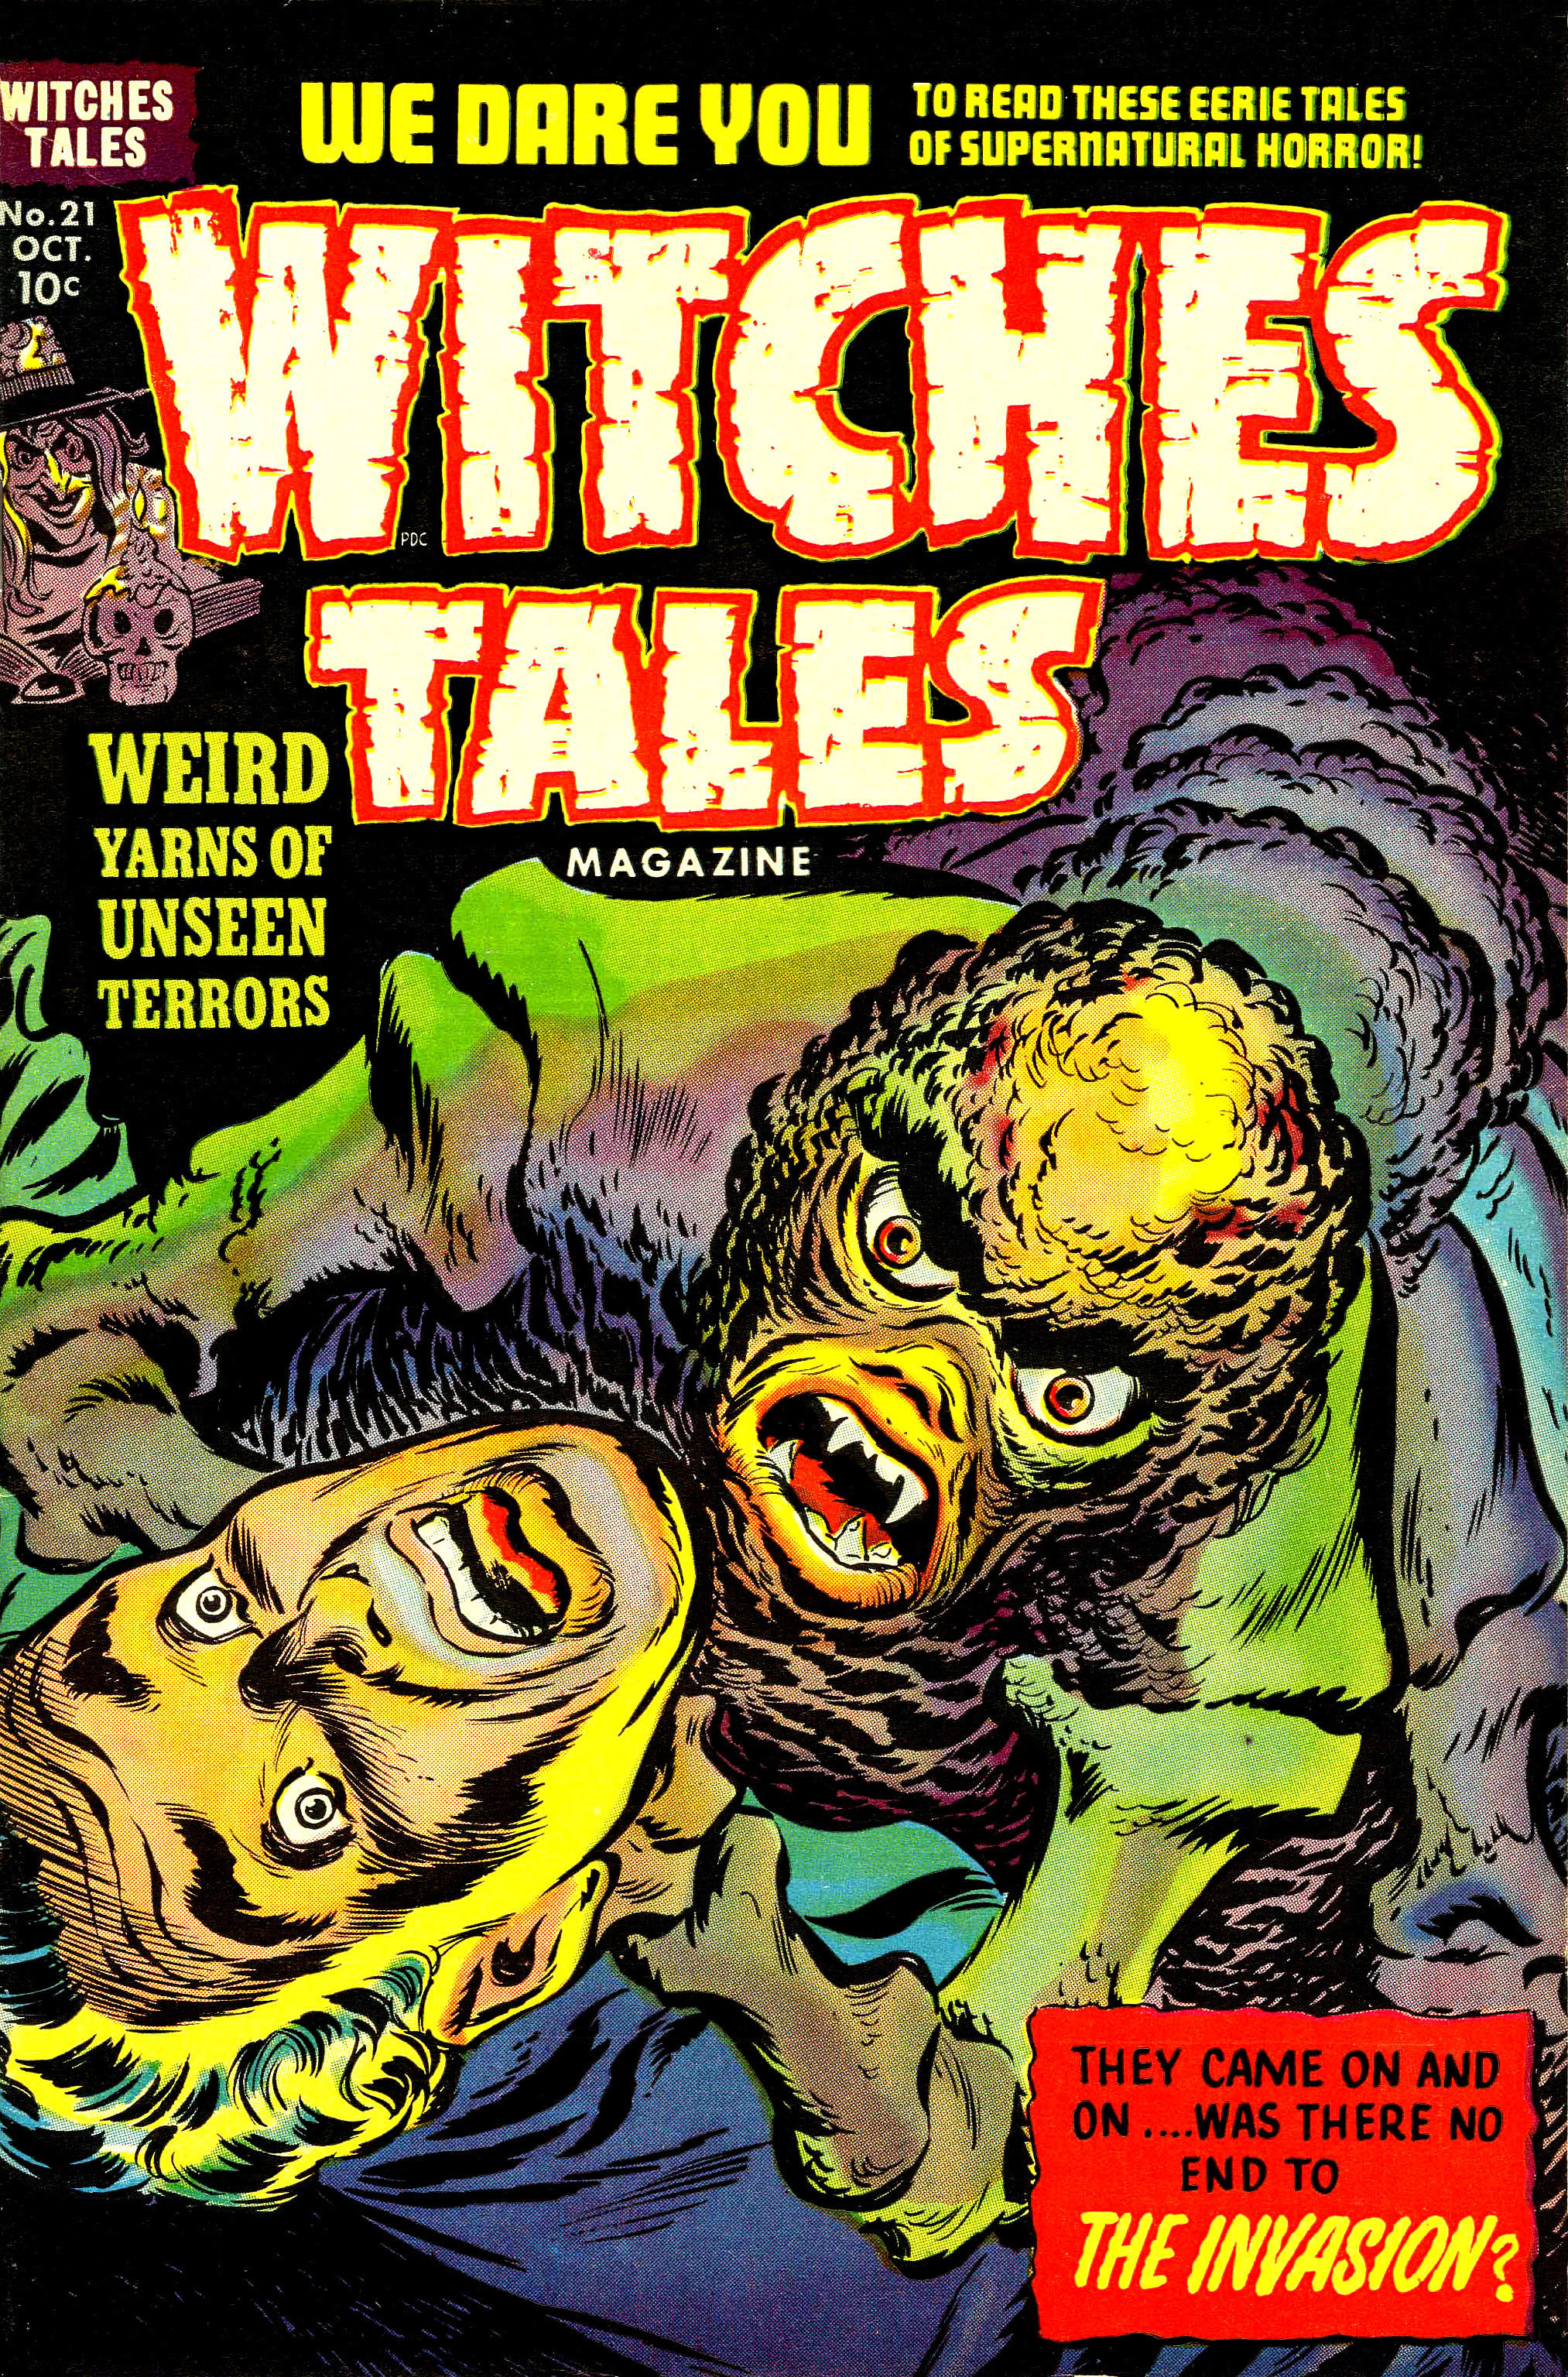 Witches Tales #21, Warren Kremer, Lee Elias Cover (Harvey, 1953)